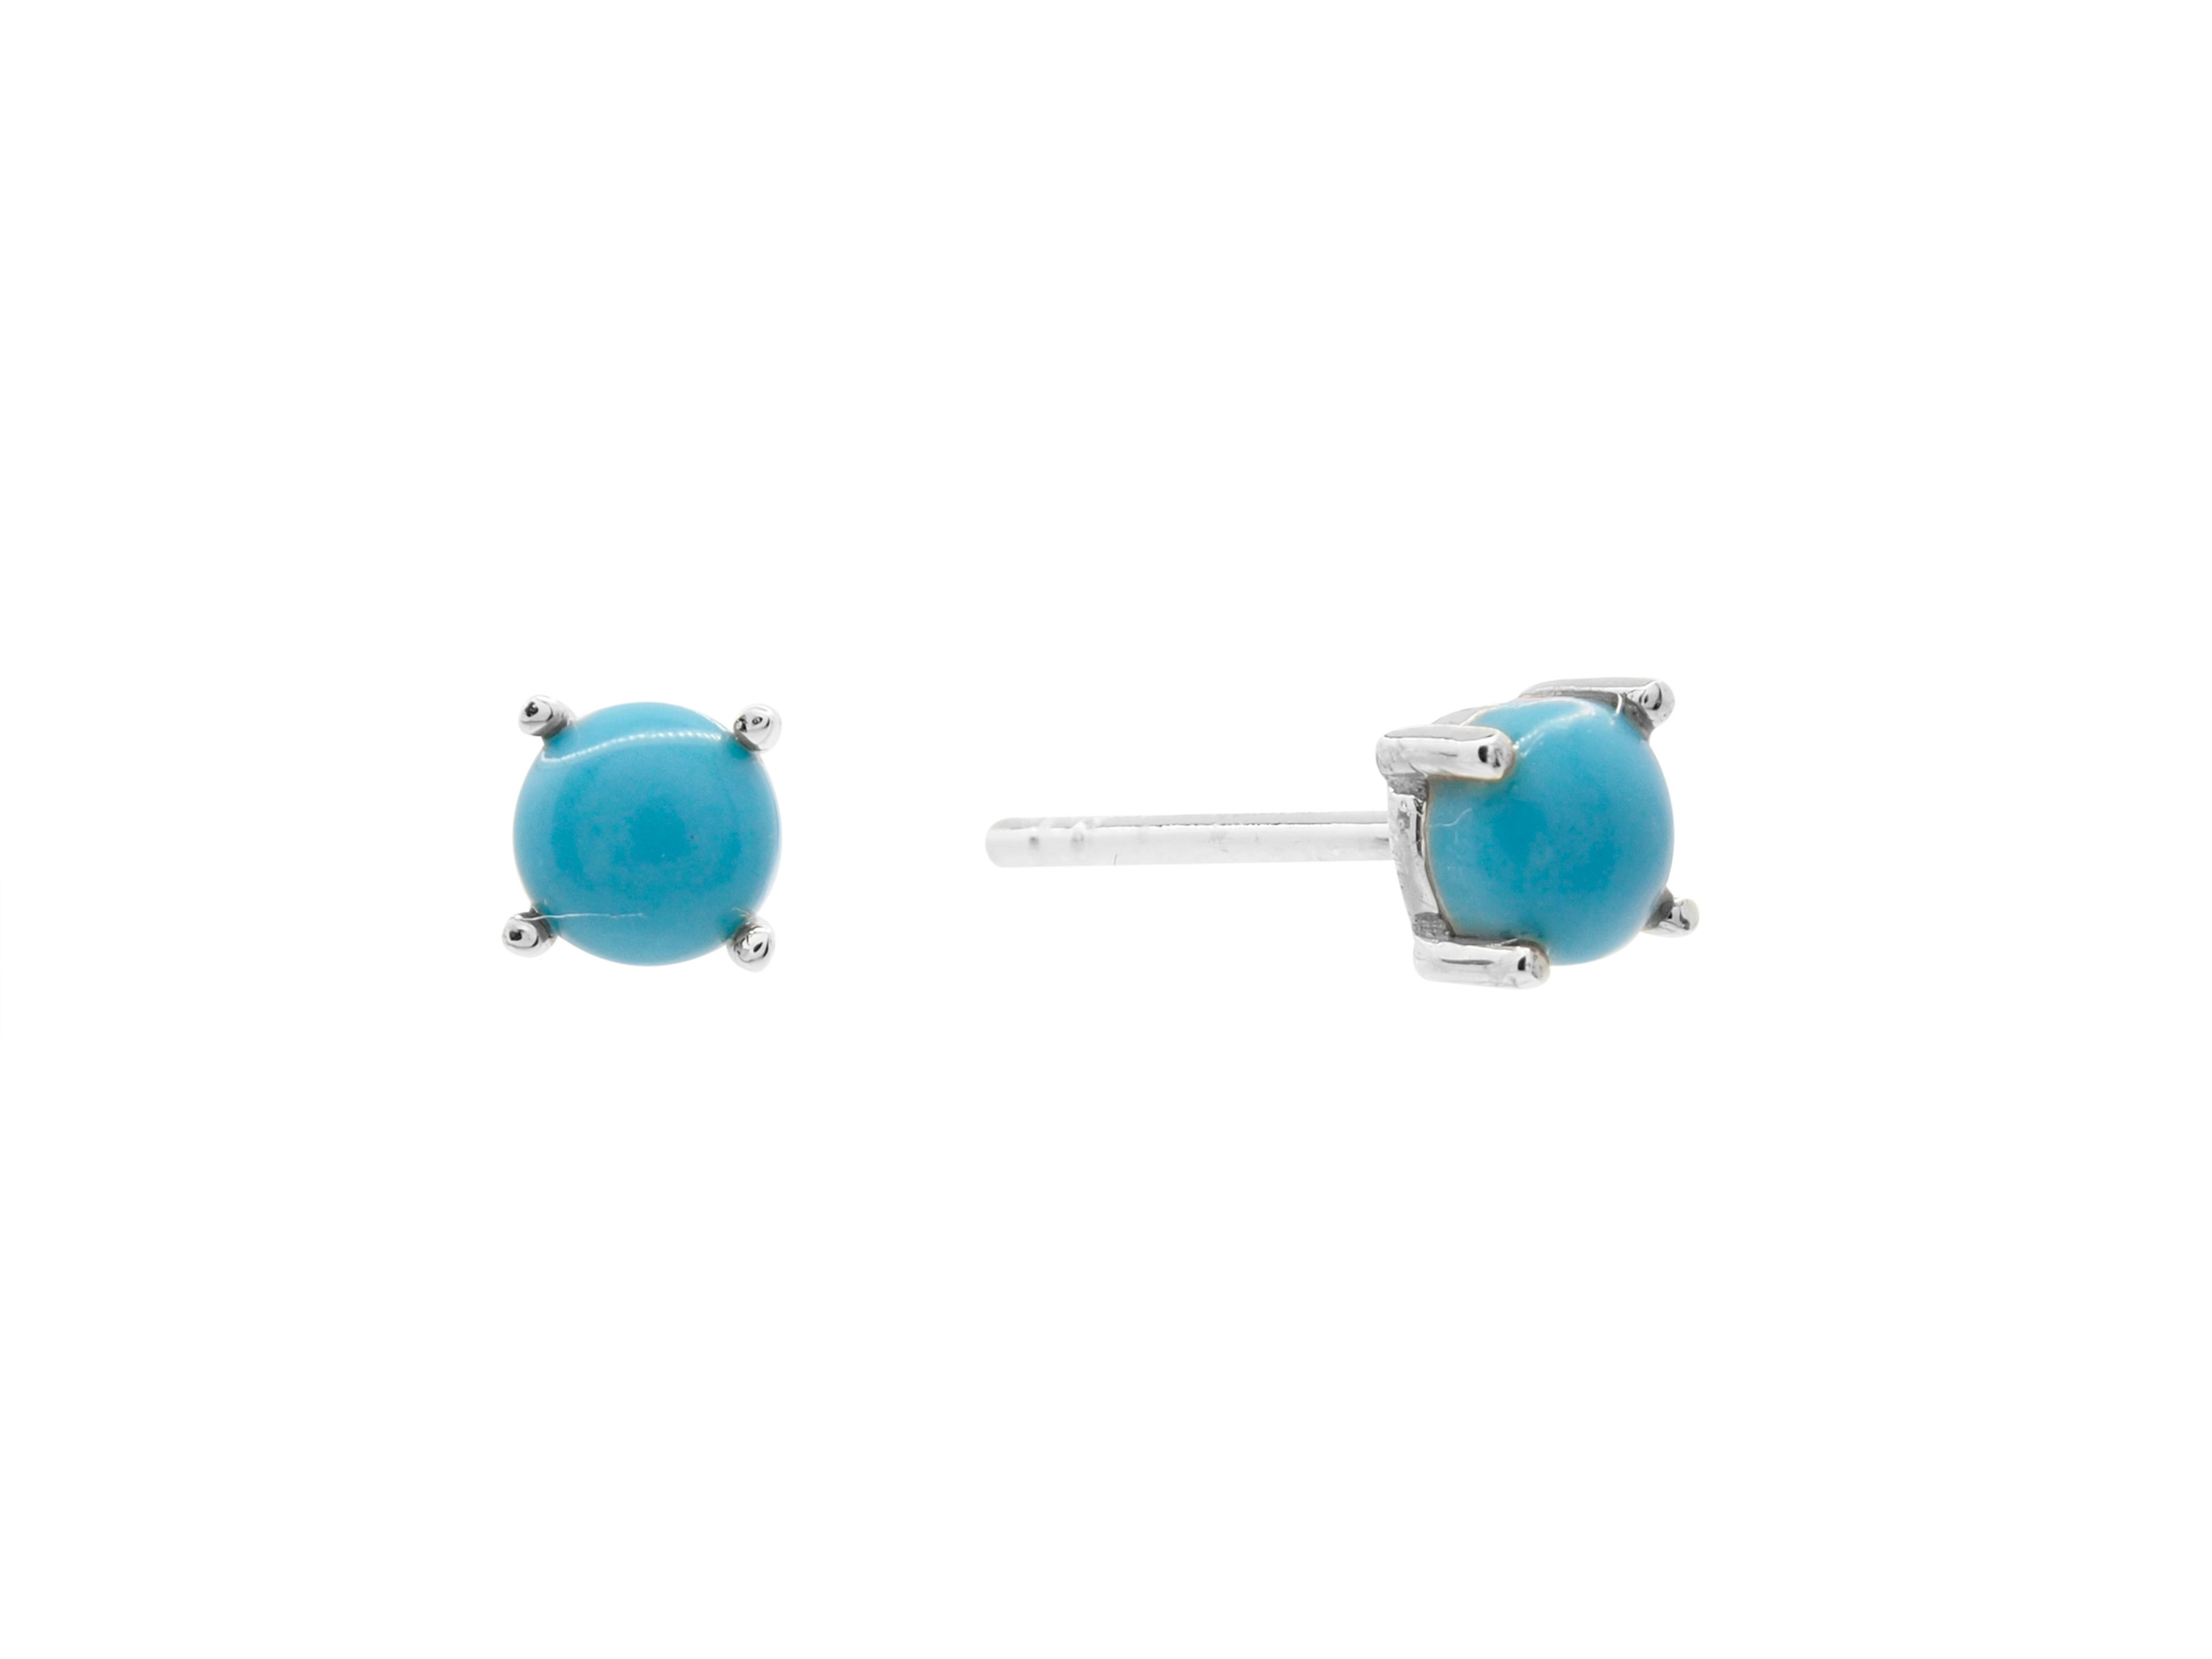 Castle rock turquoise stud earrings, sterling silver, rhodium plated